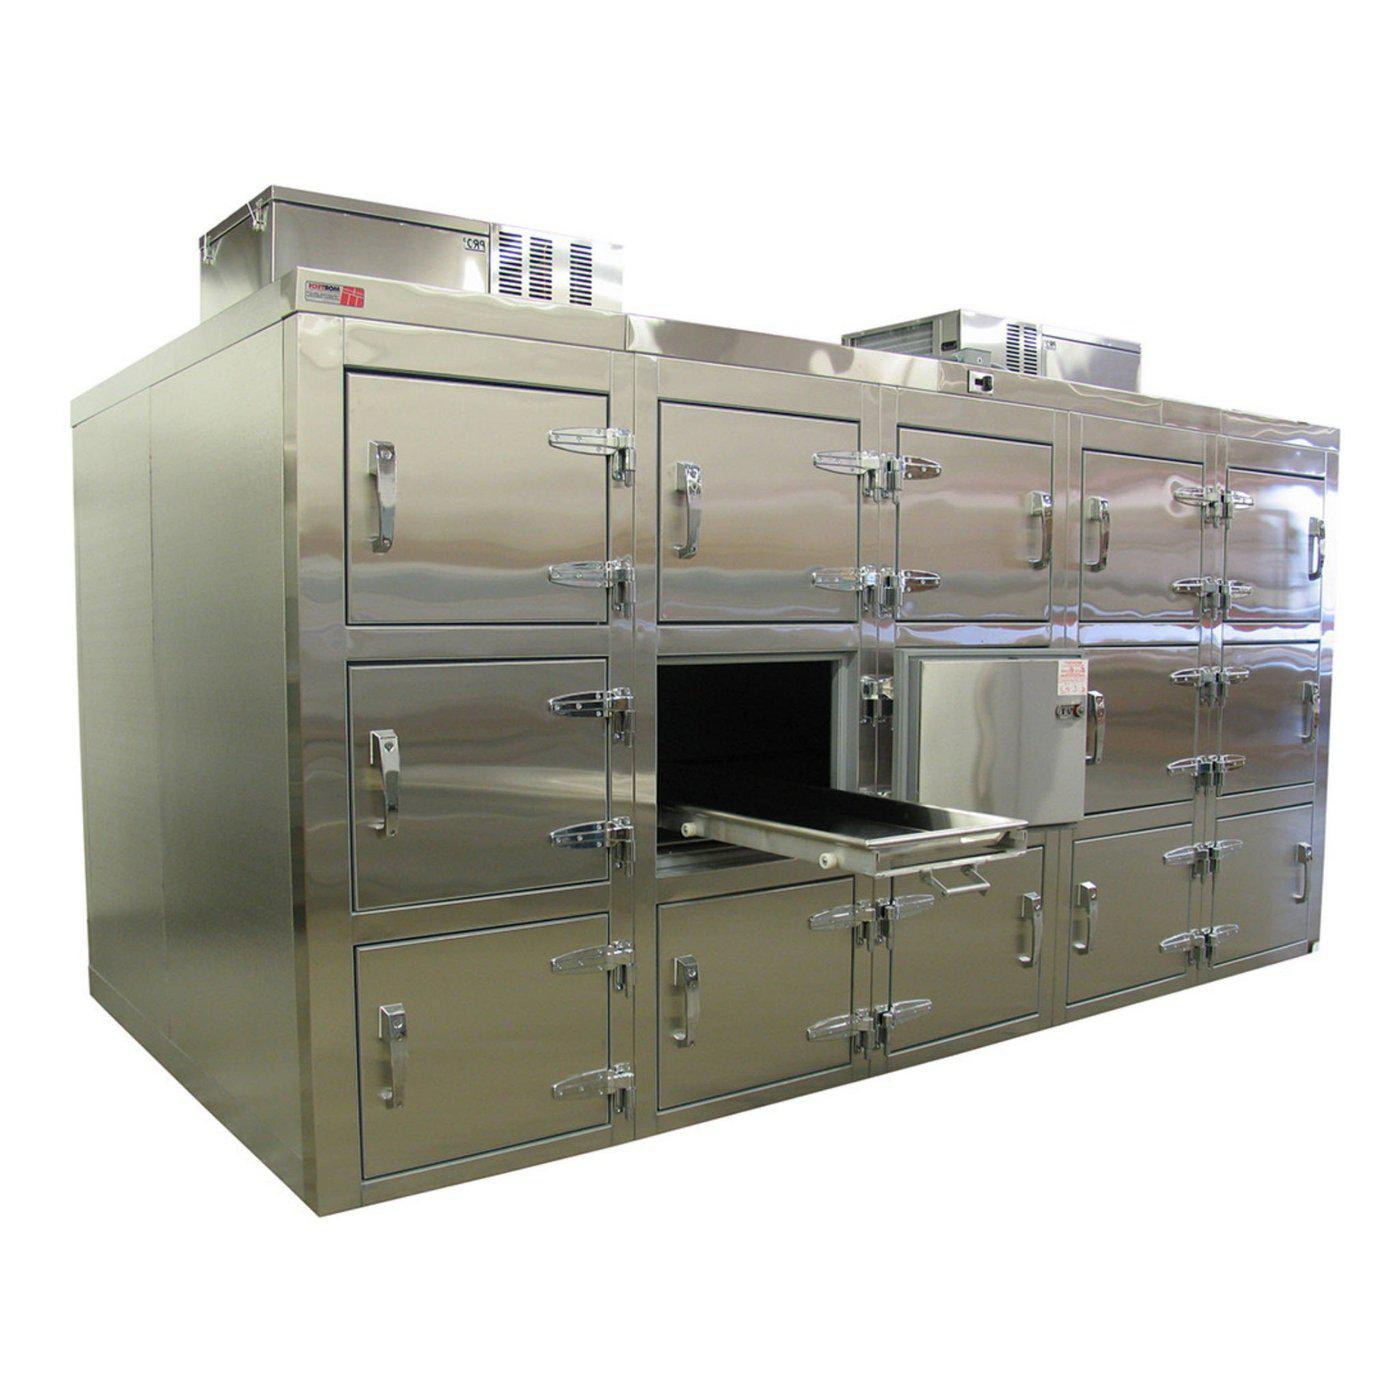 Fifteen Body Refrigerator-Refrigeration-Mortech Manufacturing Company Inc. Quality Stainless Steel Autopsy, Morgue, Funeral Home, Necropsy, Veterinary / Anatomy, Dissection Equipment and Accessories